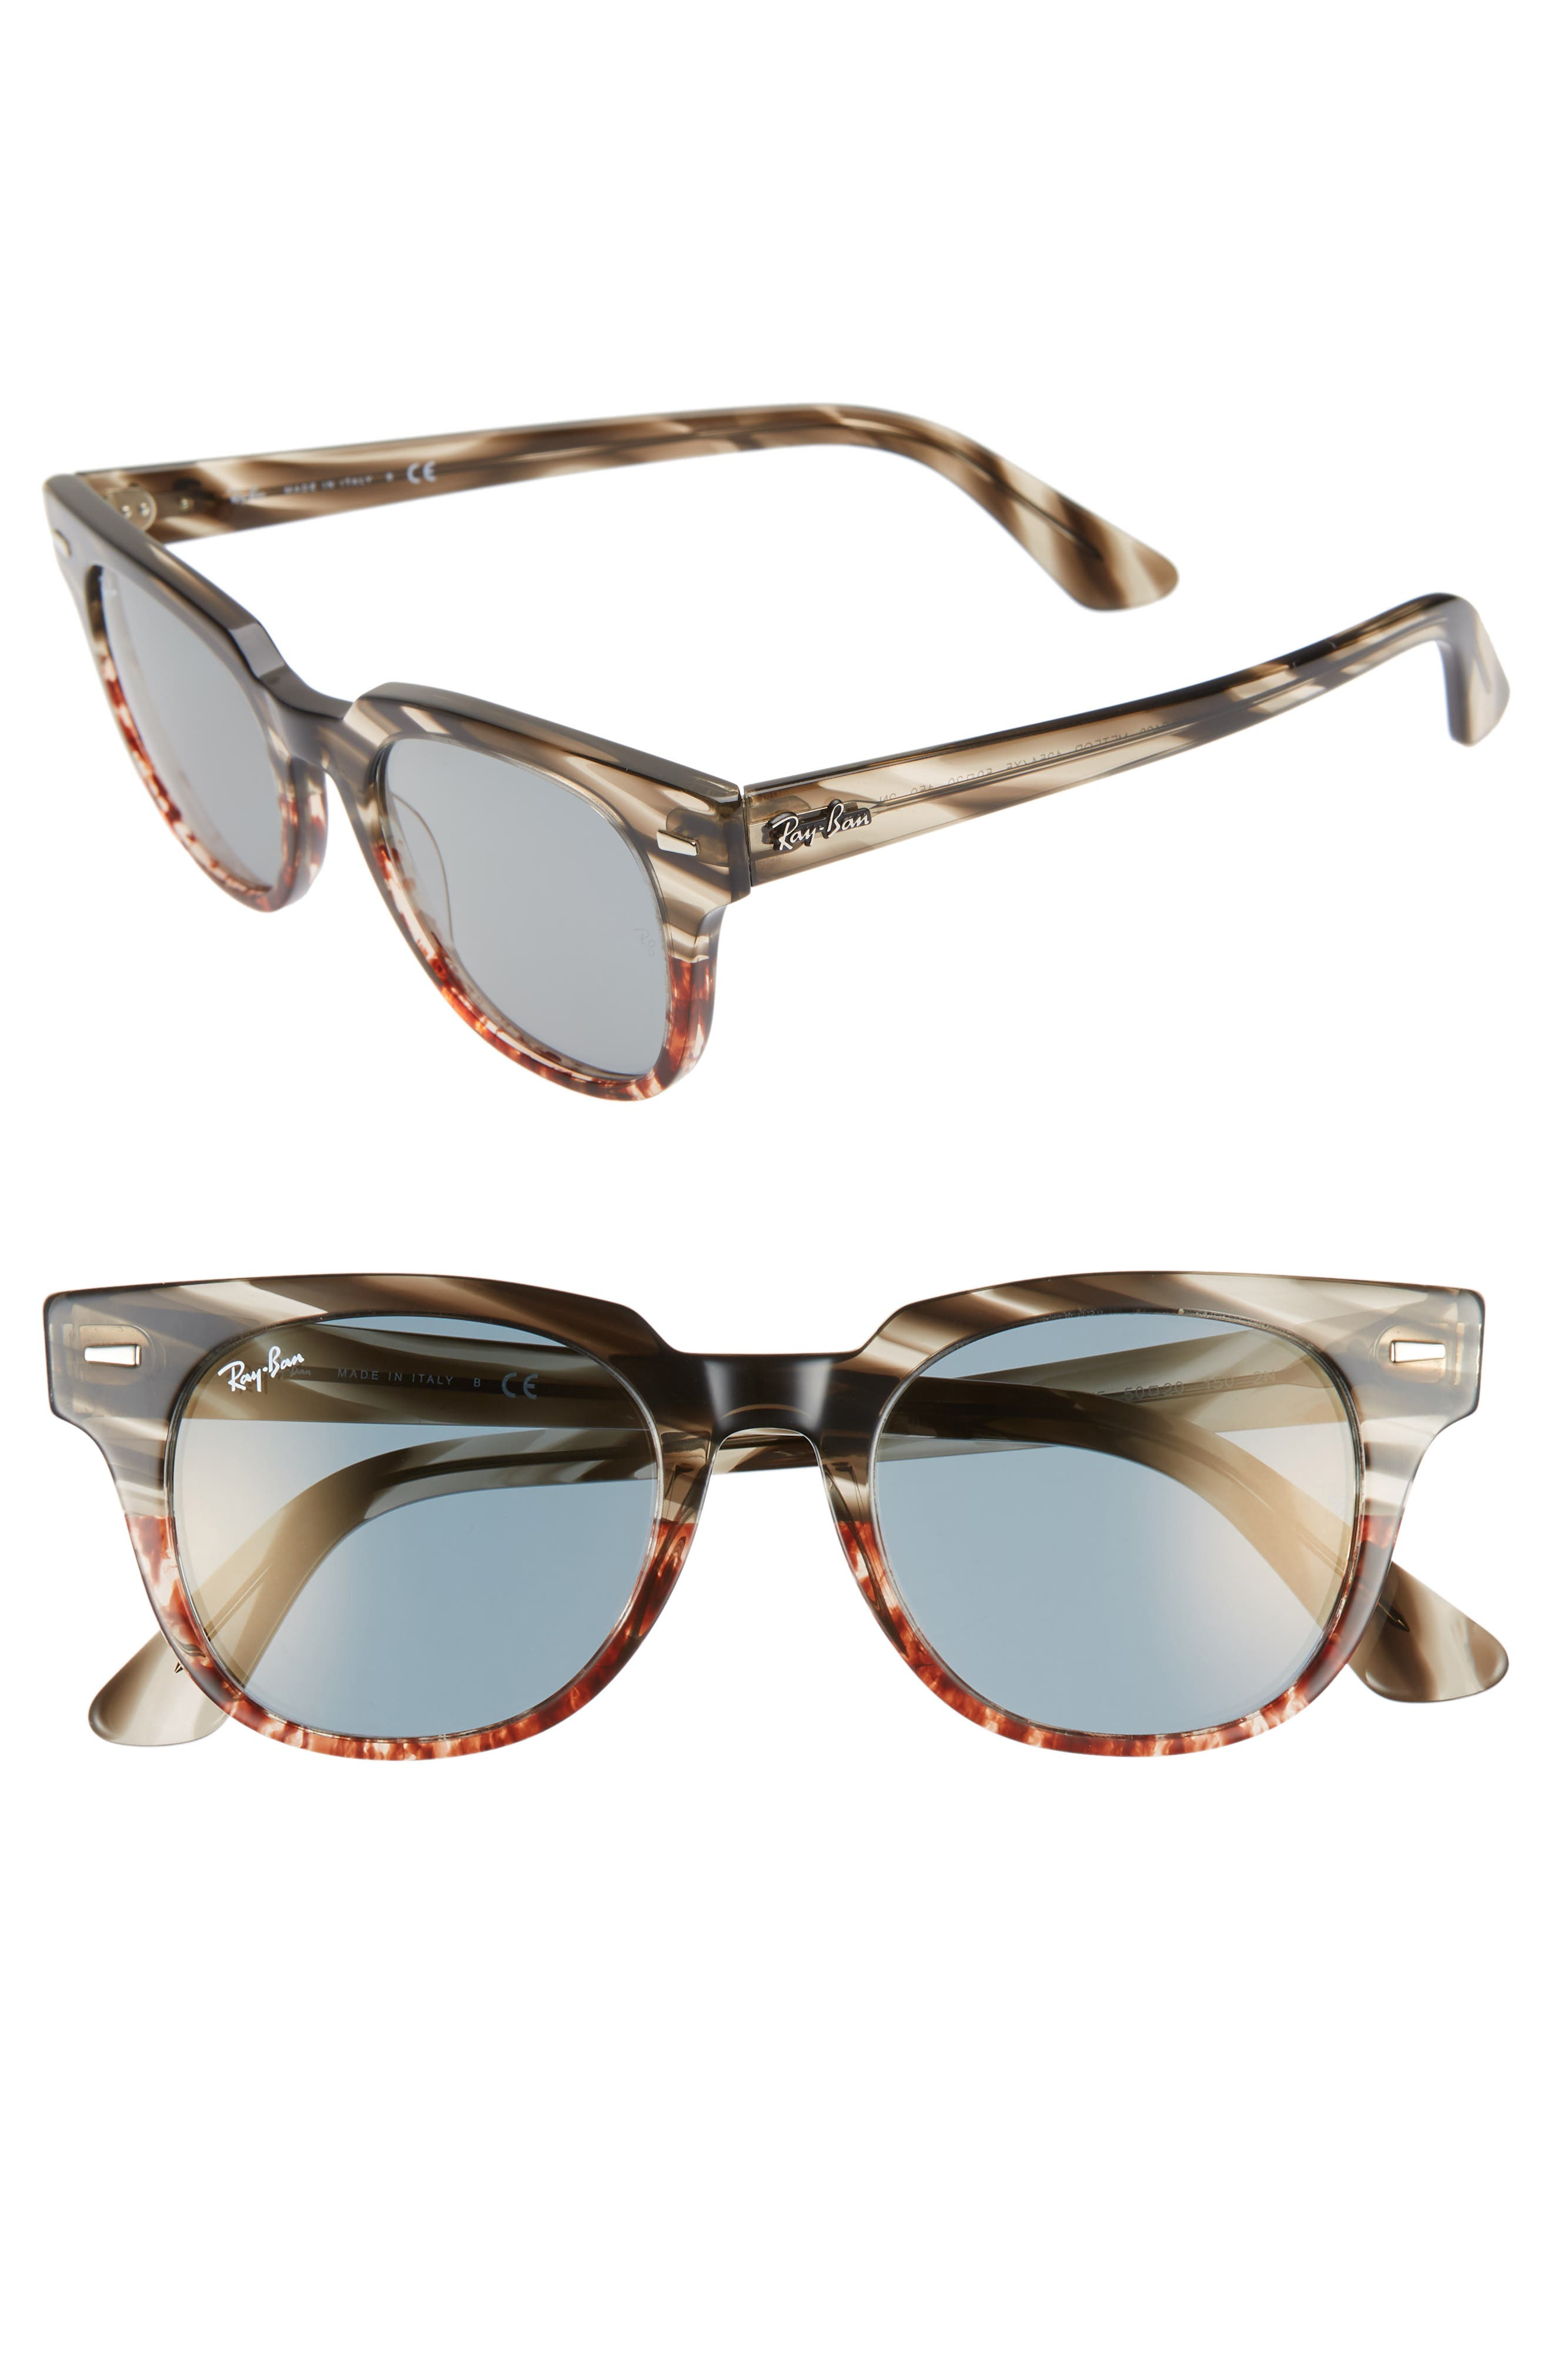 Meteor 50mm Mirrored Wayfarer Sunglasses,                             Main thumbnail 1, color,                             GOLD BLUE MIRROR